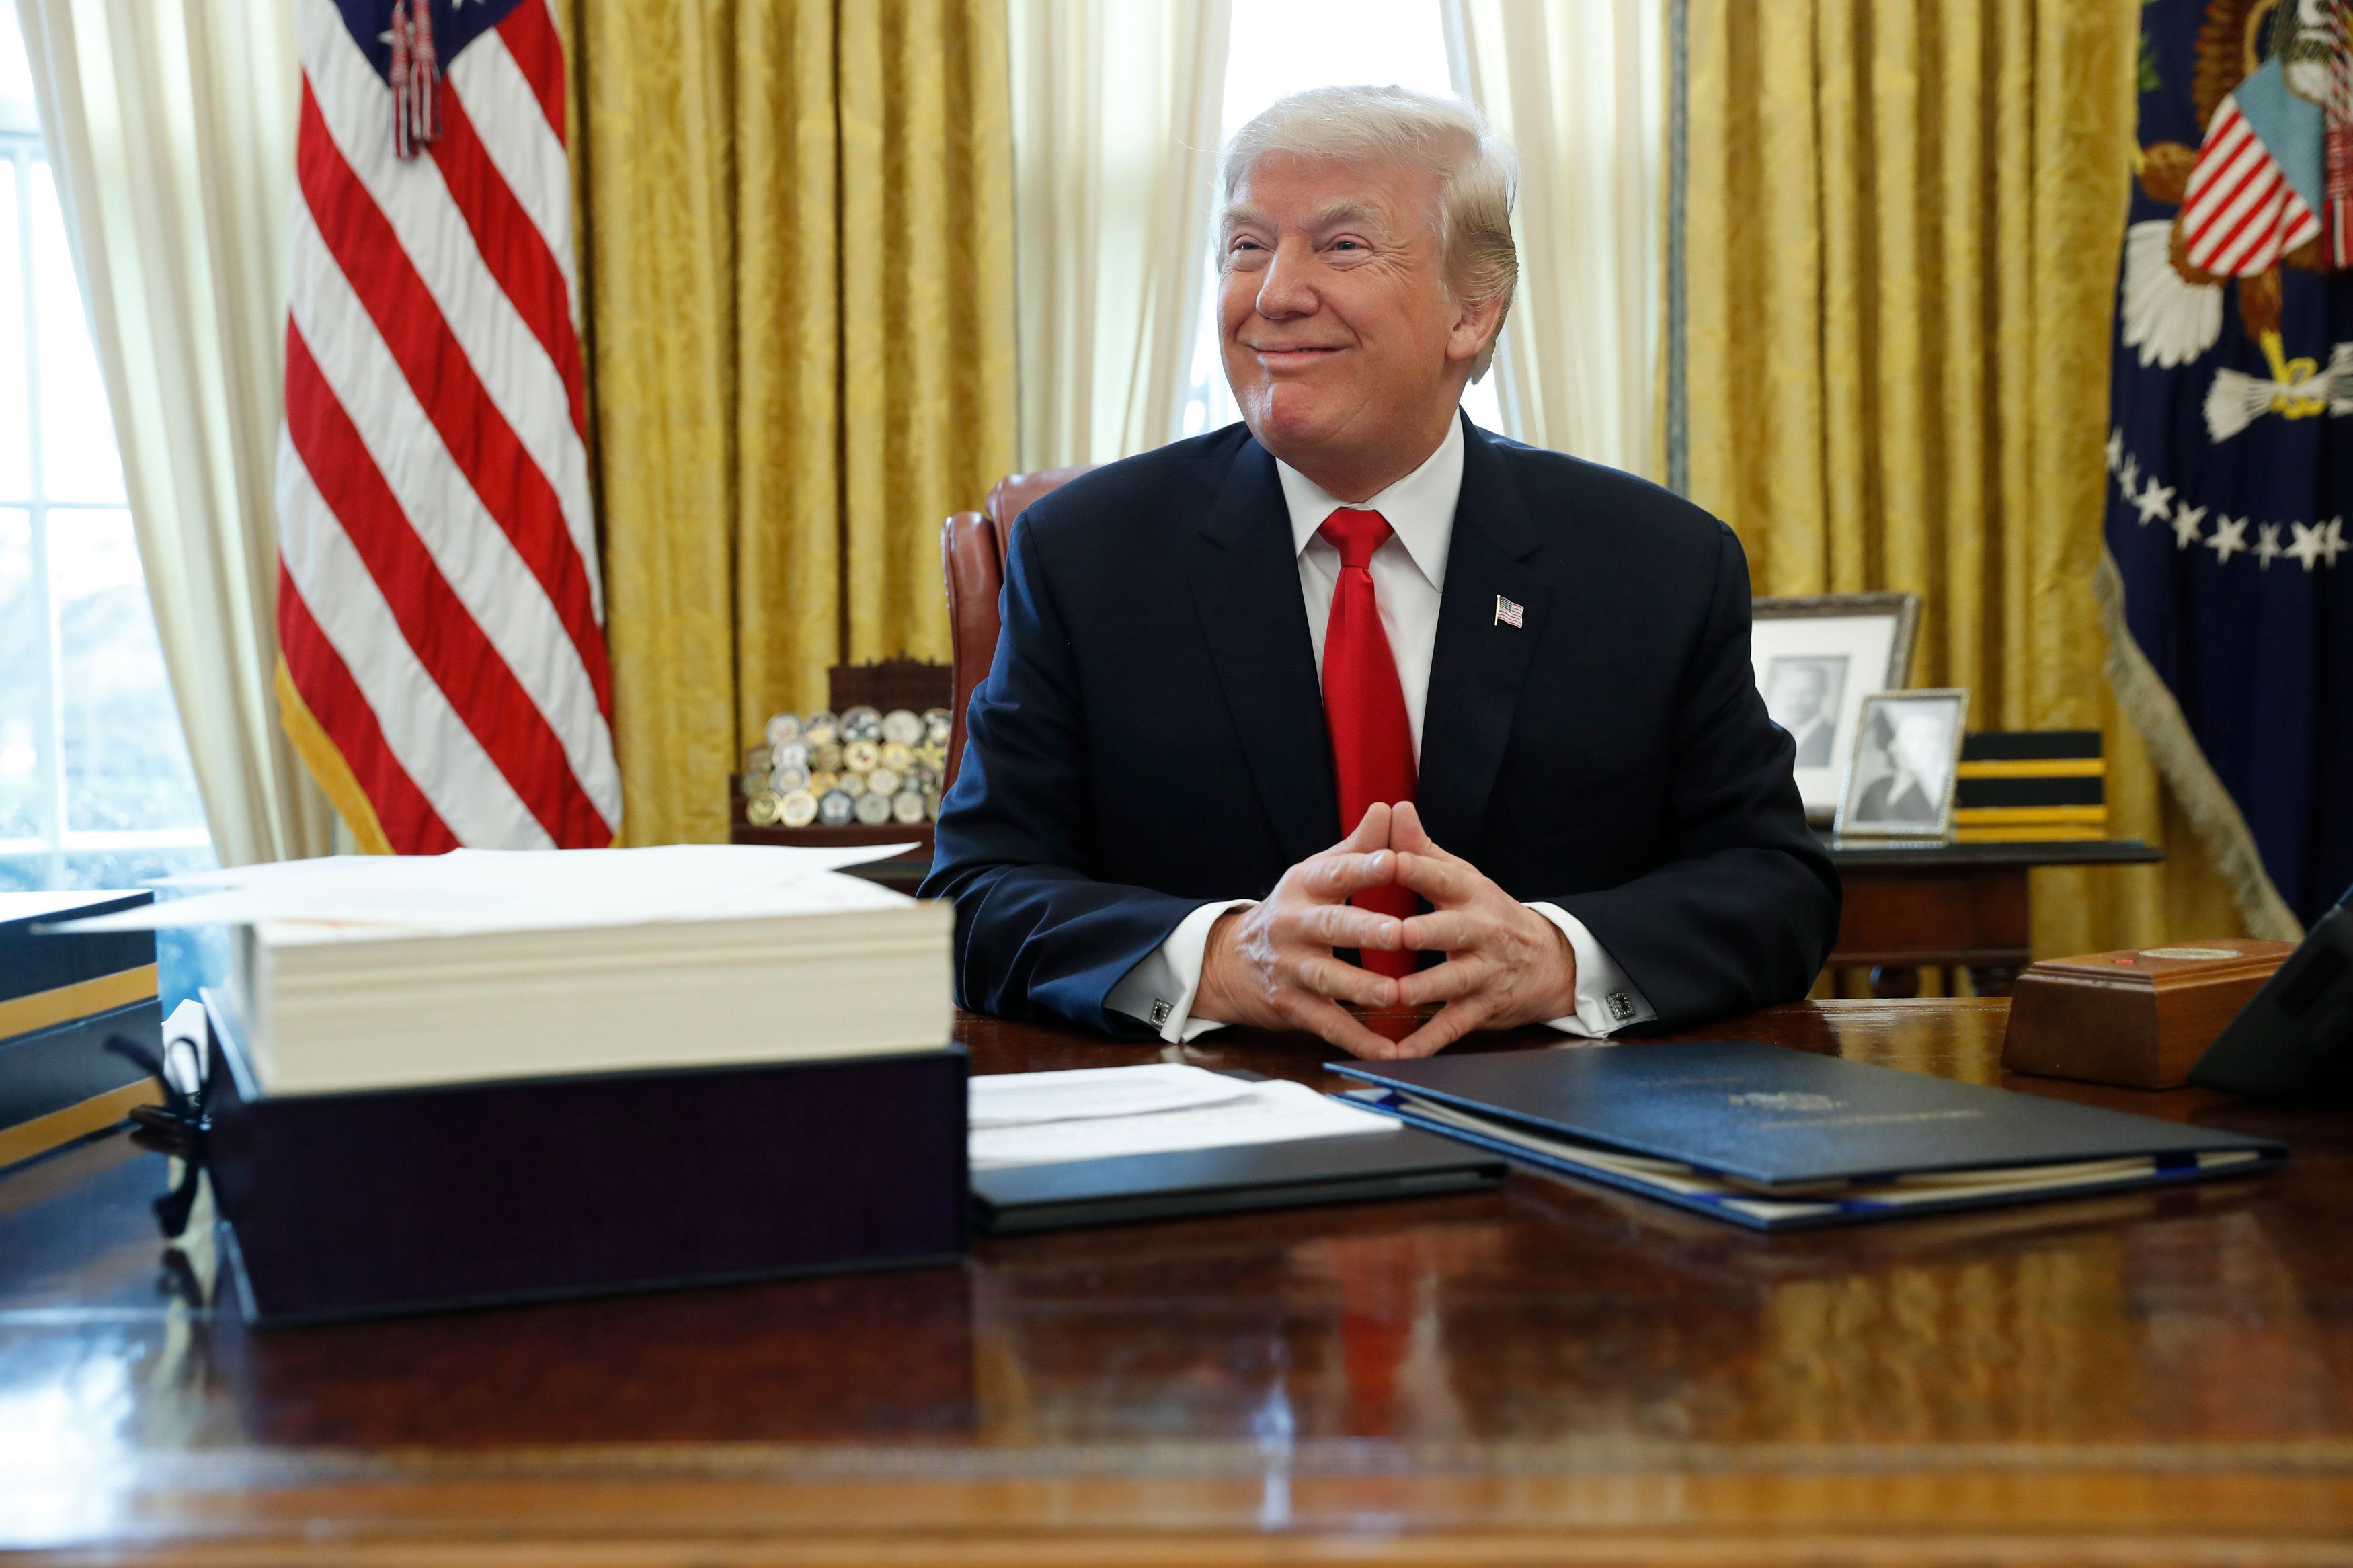 President Donald Trump reportedly rips documents, which then have to be taped back together by White House staff.